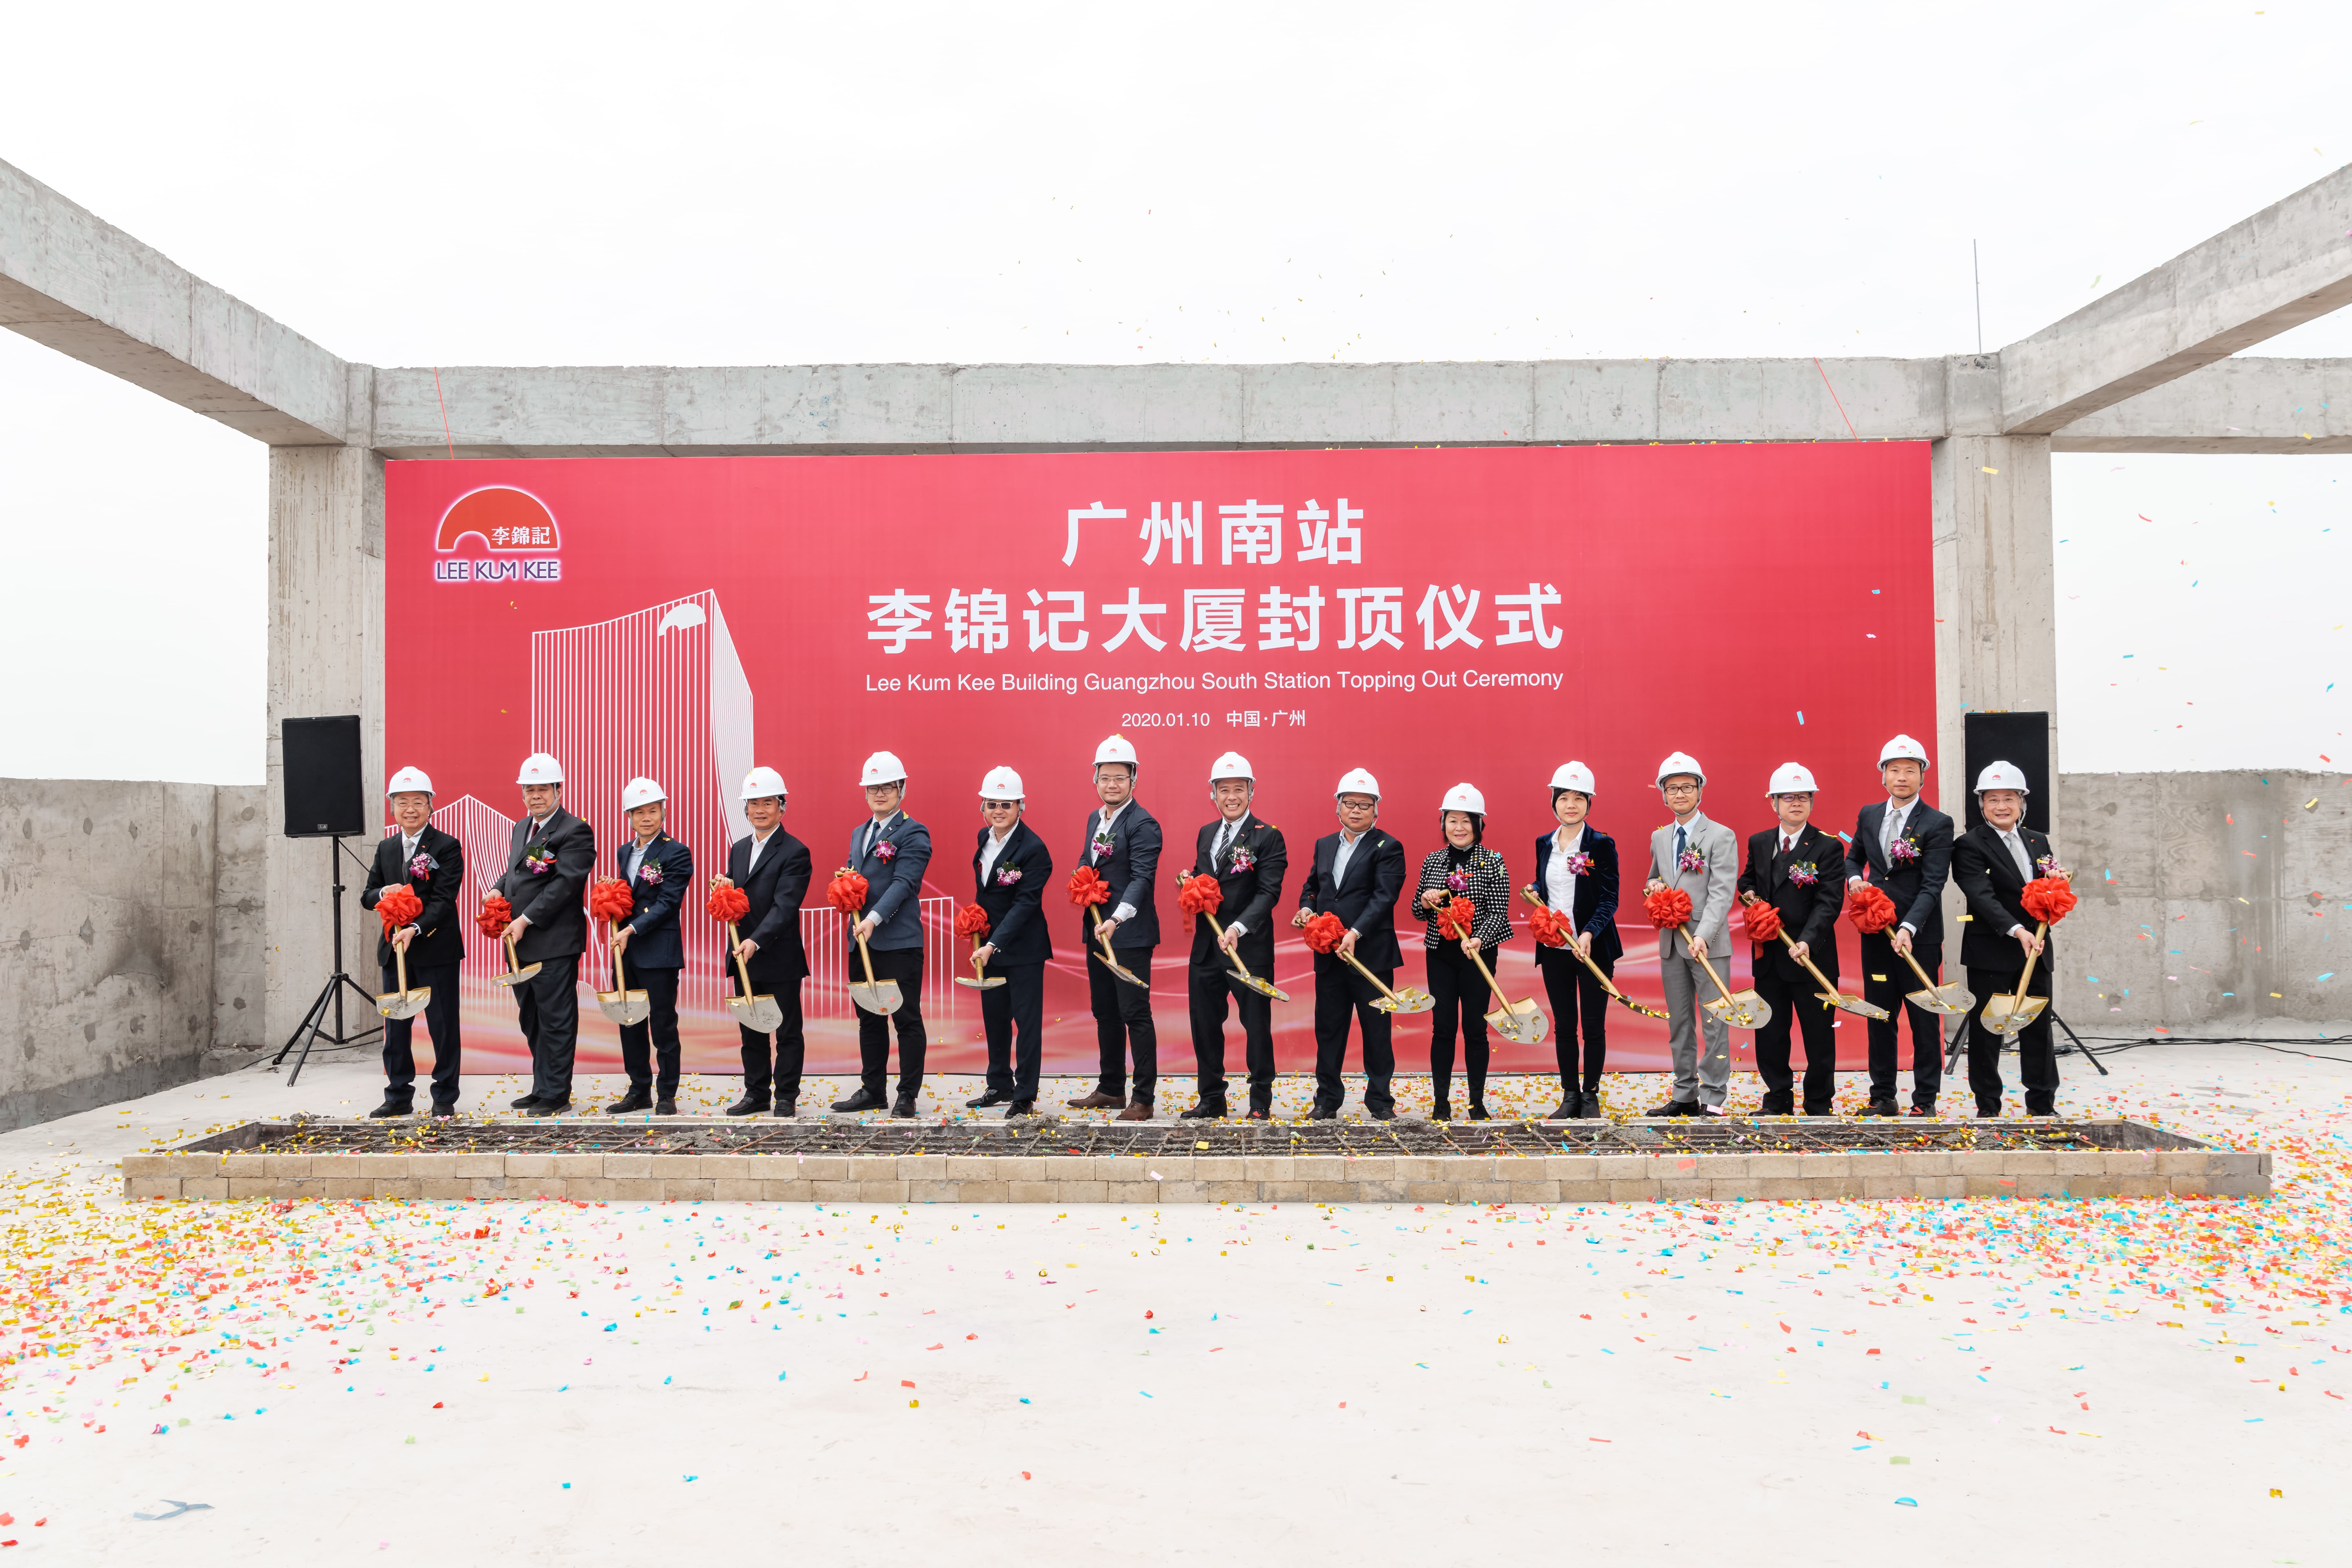 Lee Kum Kee Building Guangzhou South Station Topping Out Ceremony